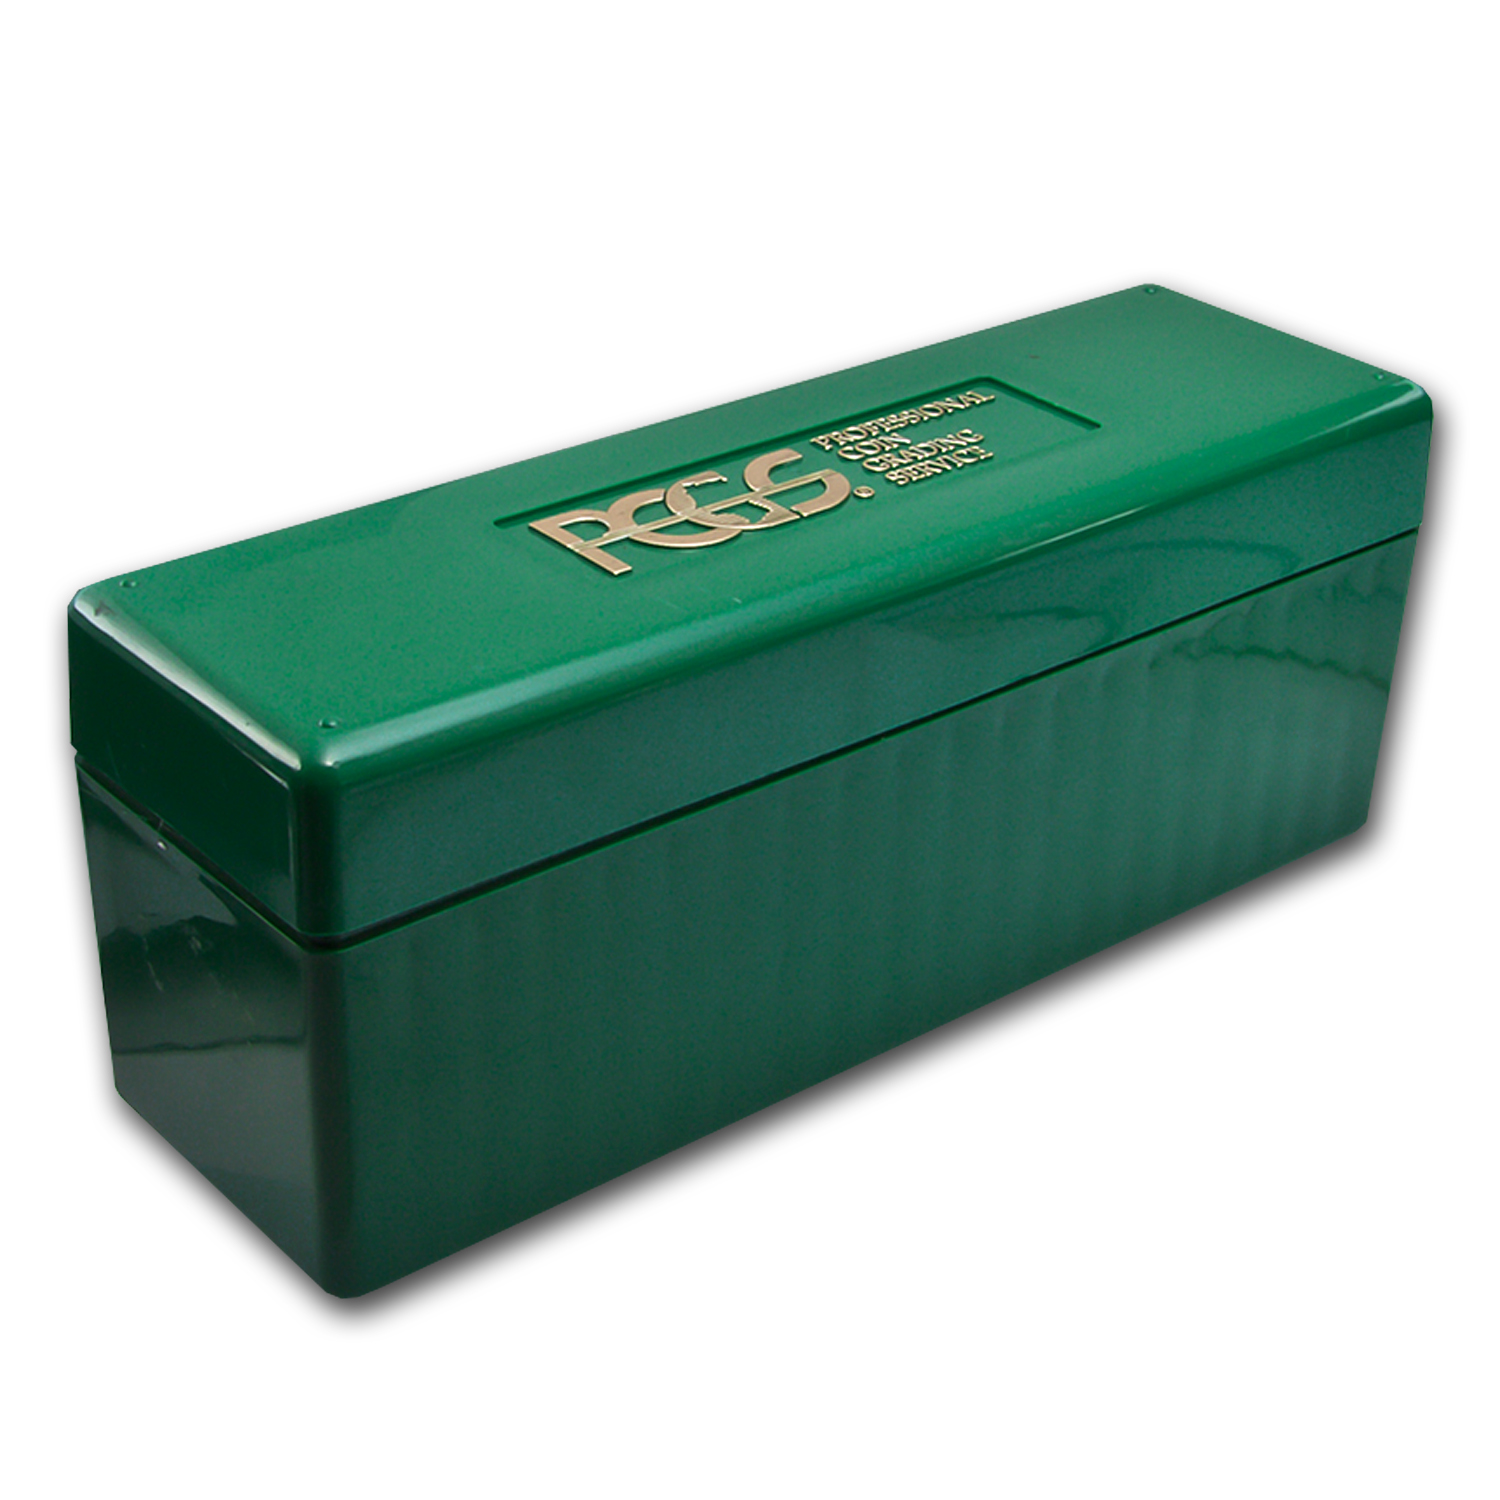 Vintage Green Pcgs 20 Coin Storage Boxes Used